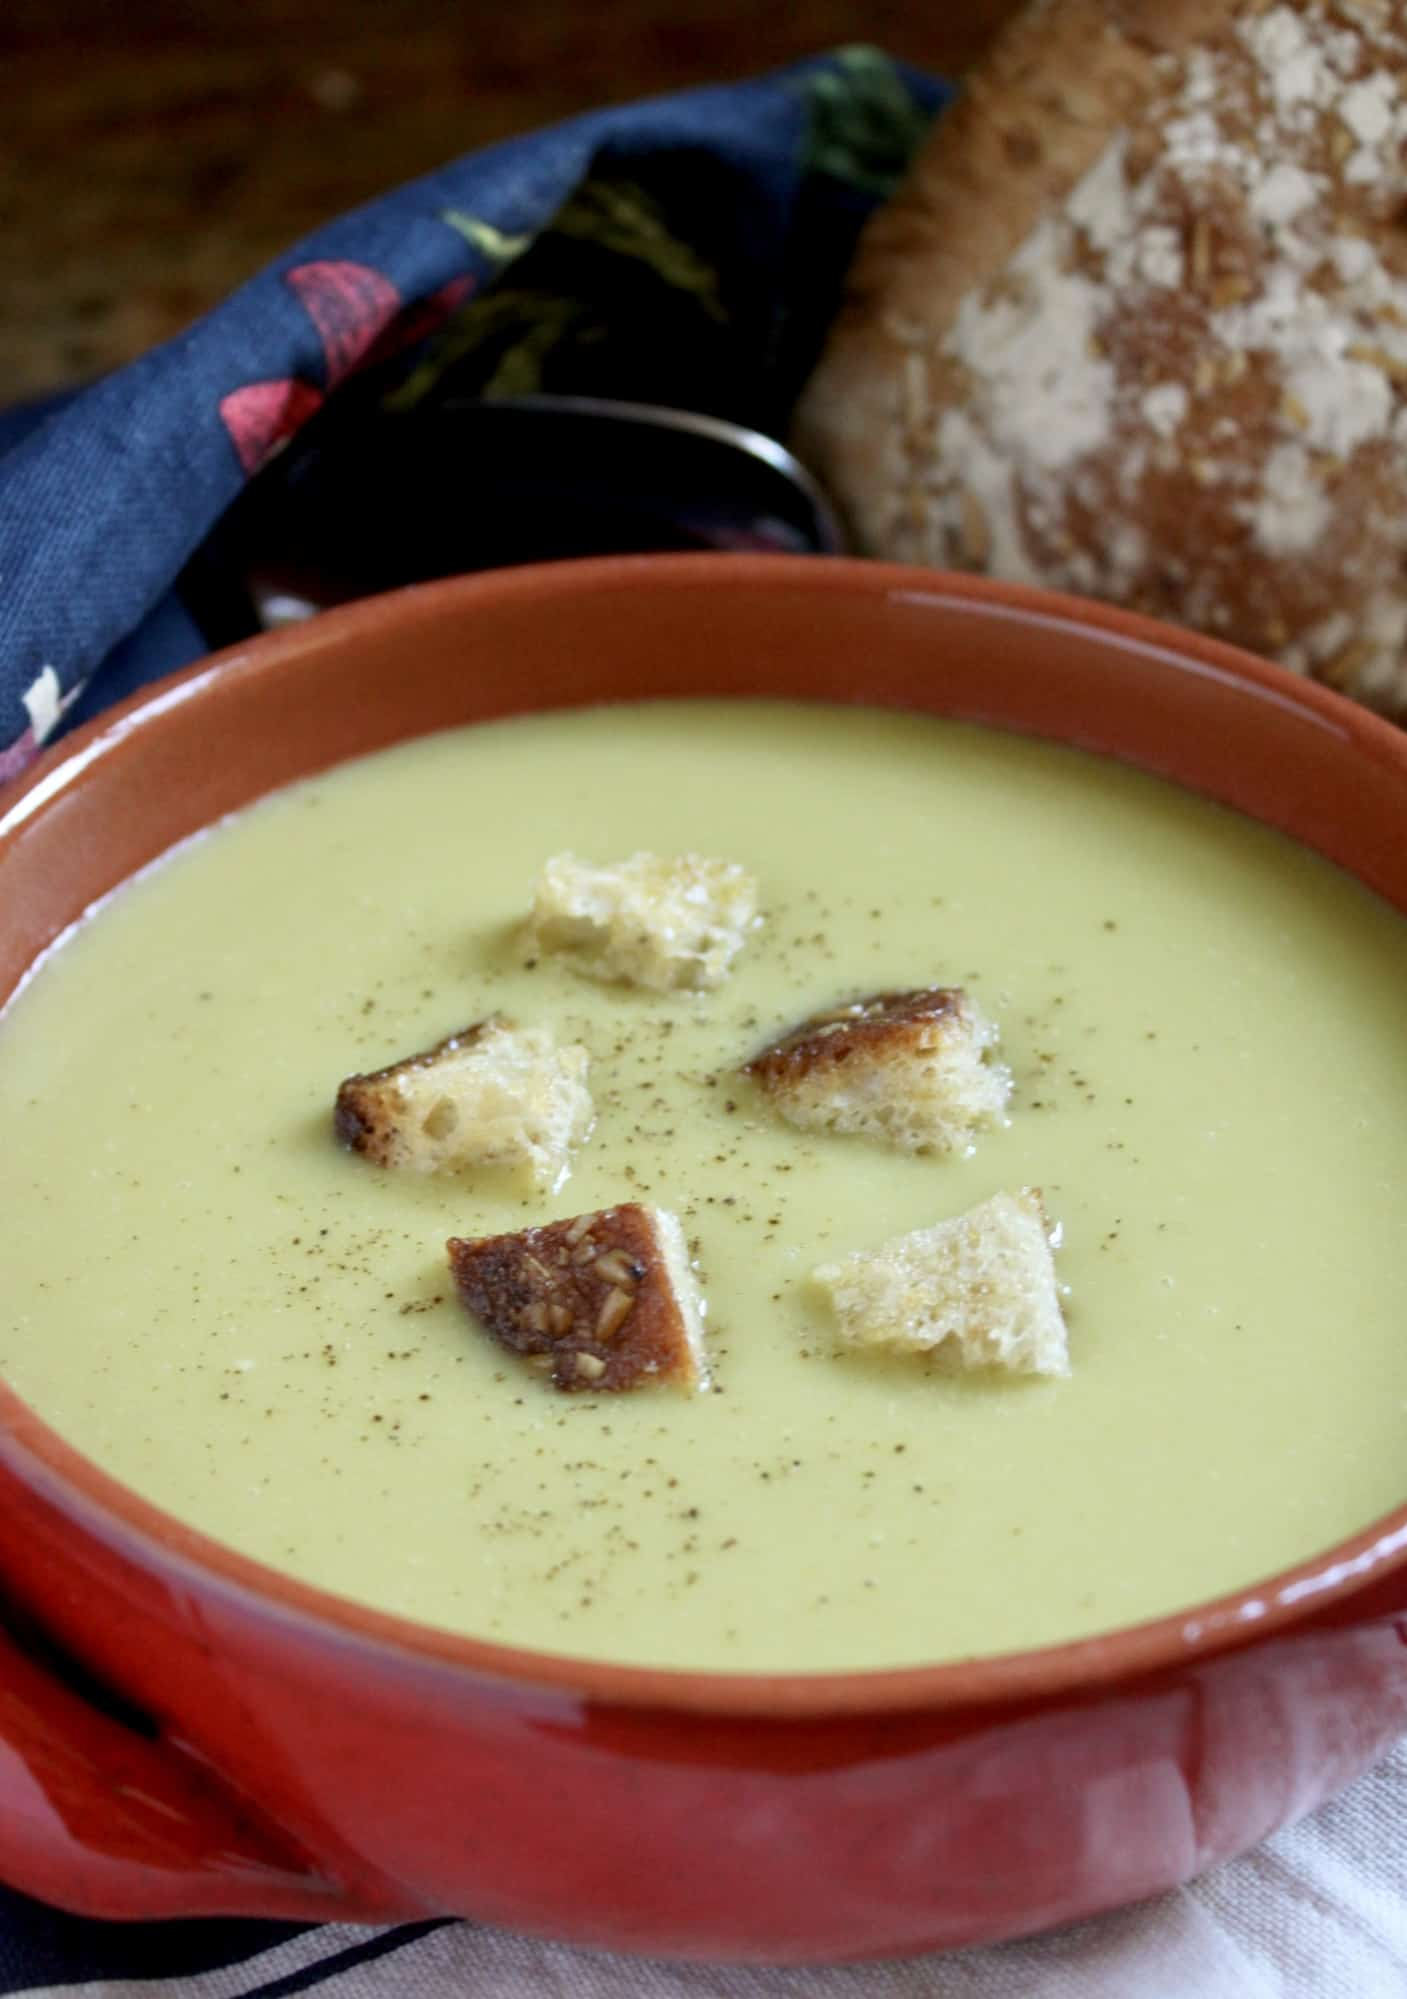 split pea soup in a red bowl